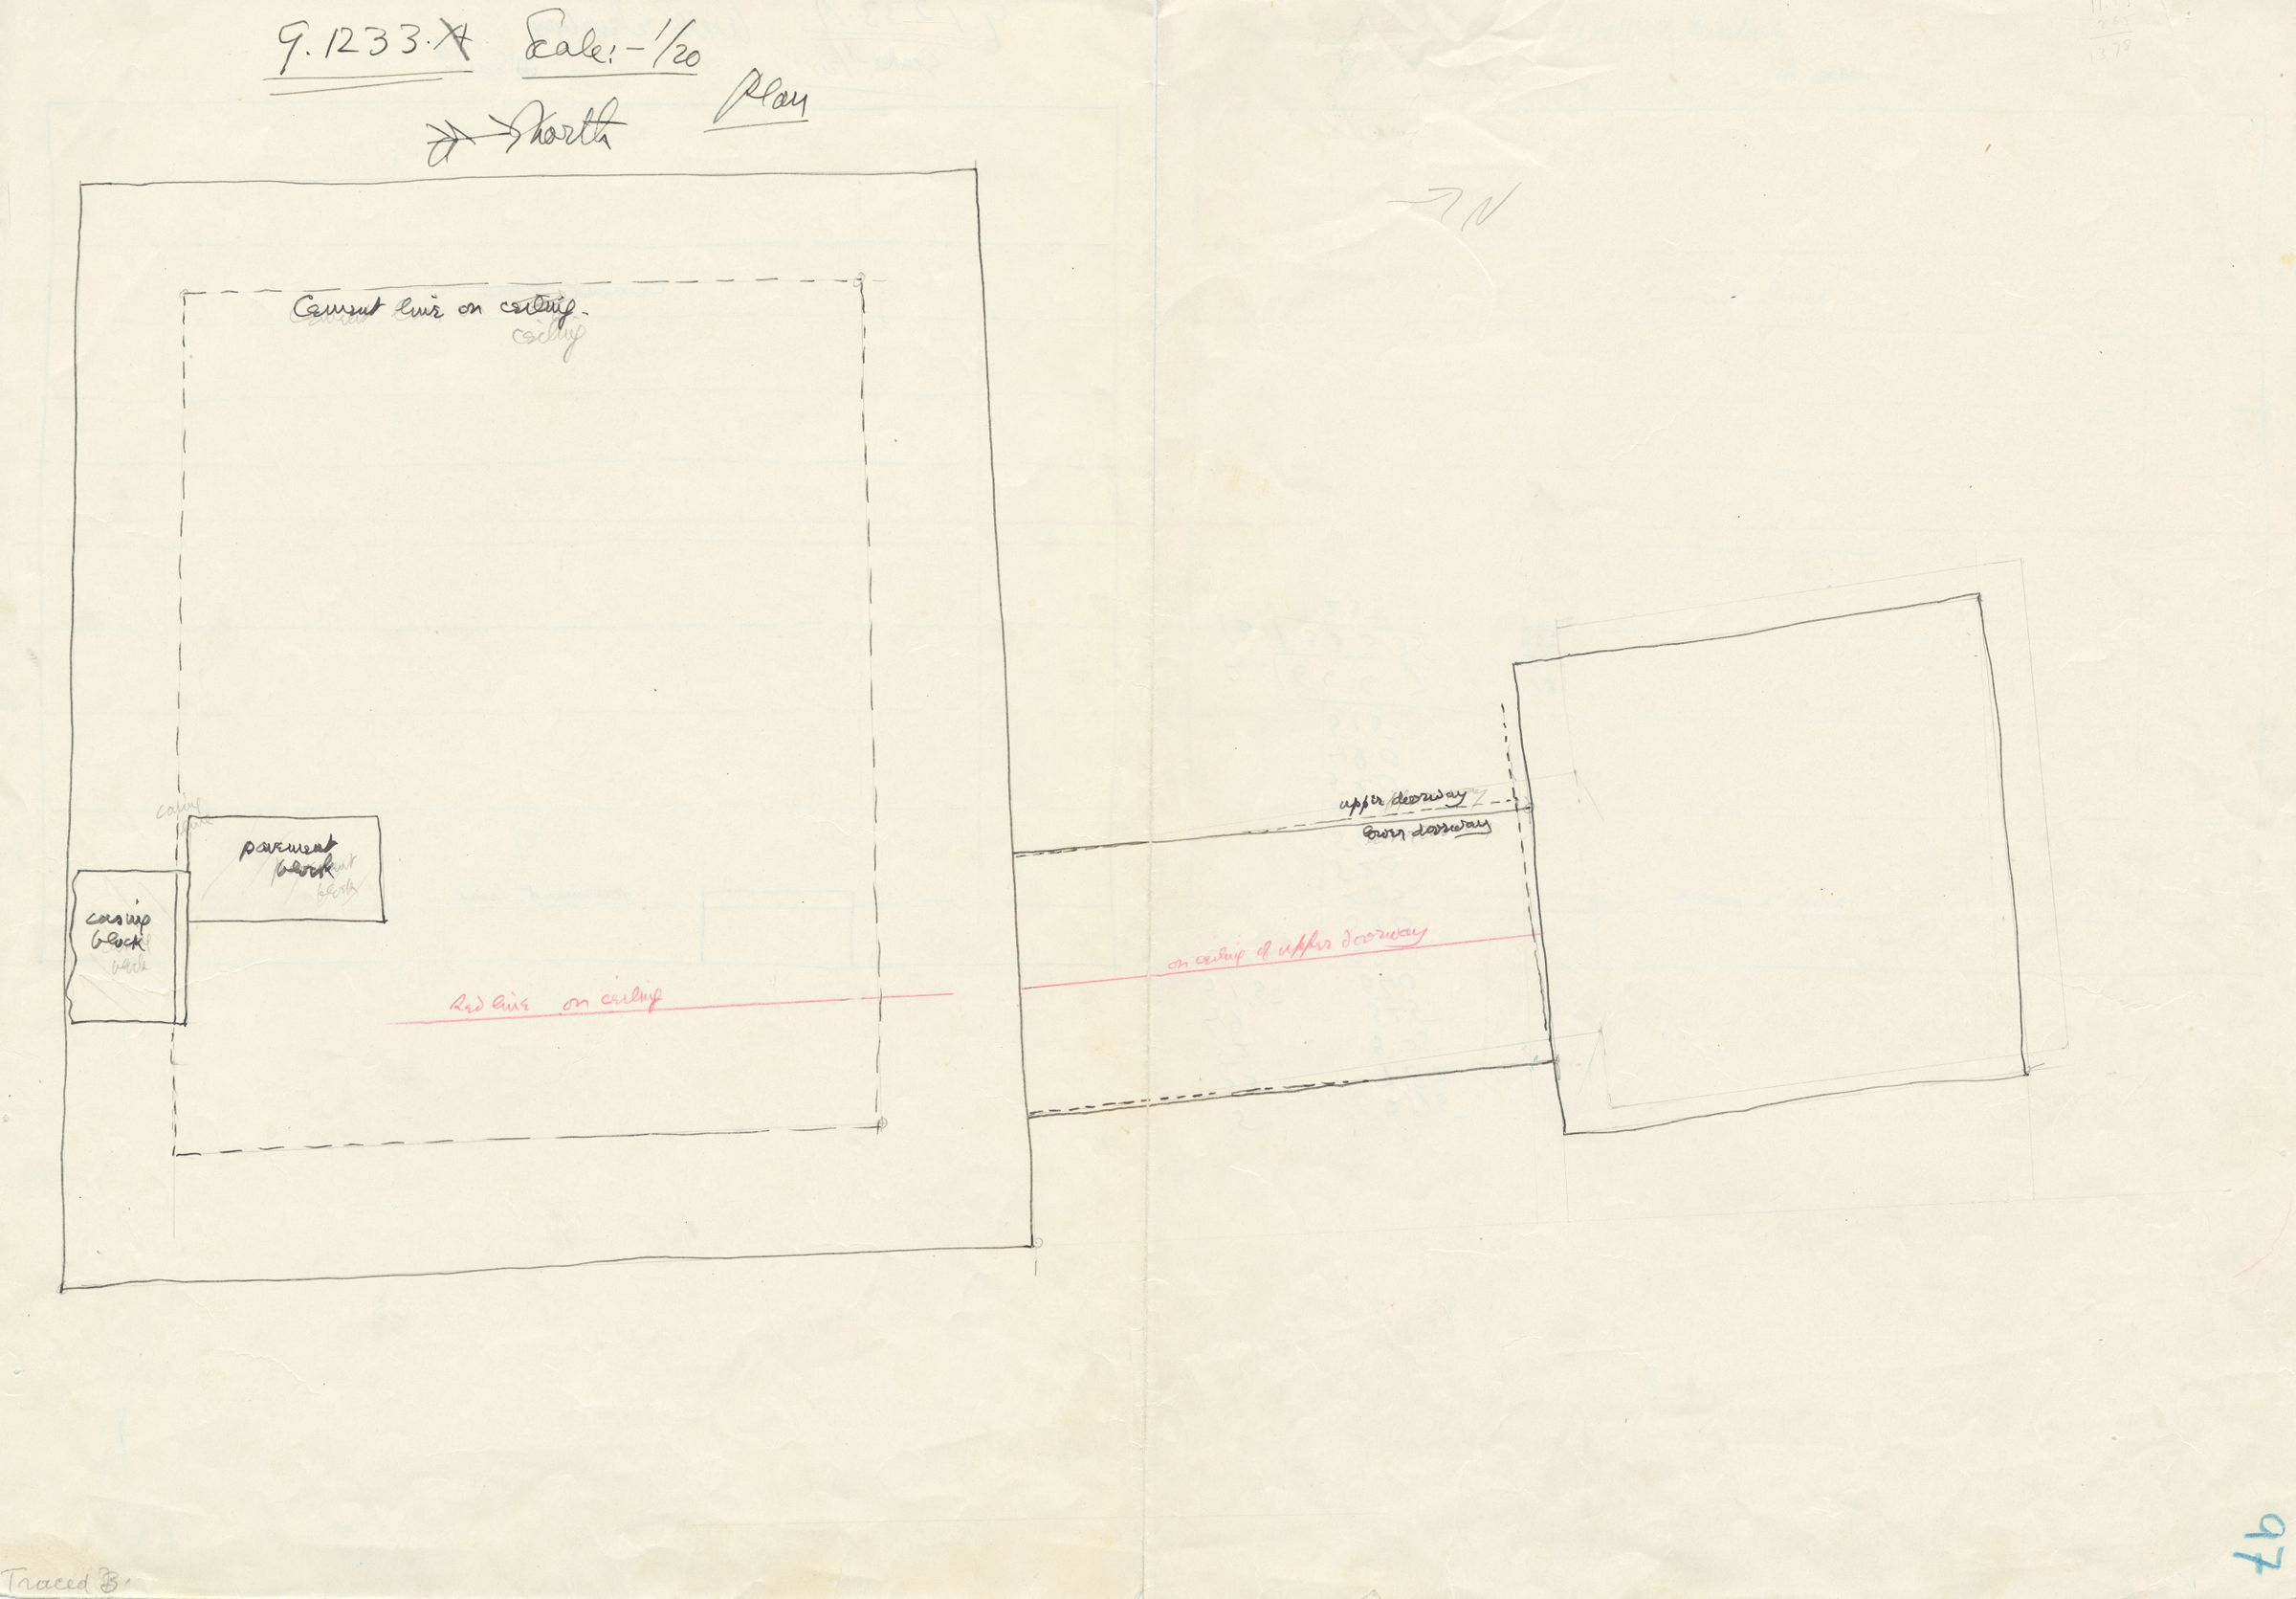 Maps and plans: G 1233, Shaft A, plan